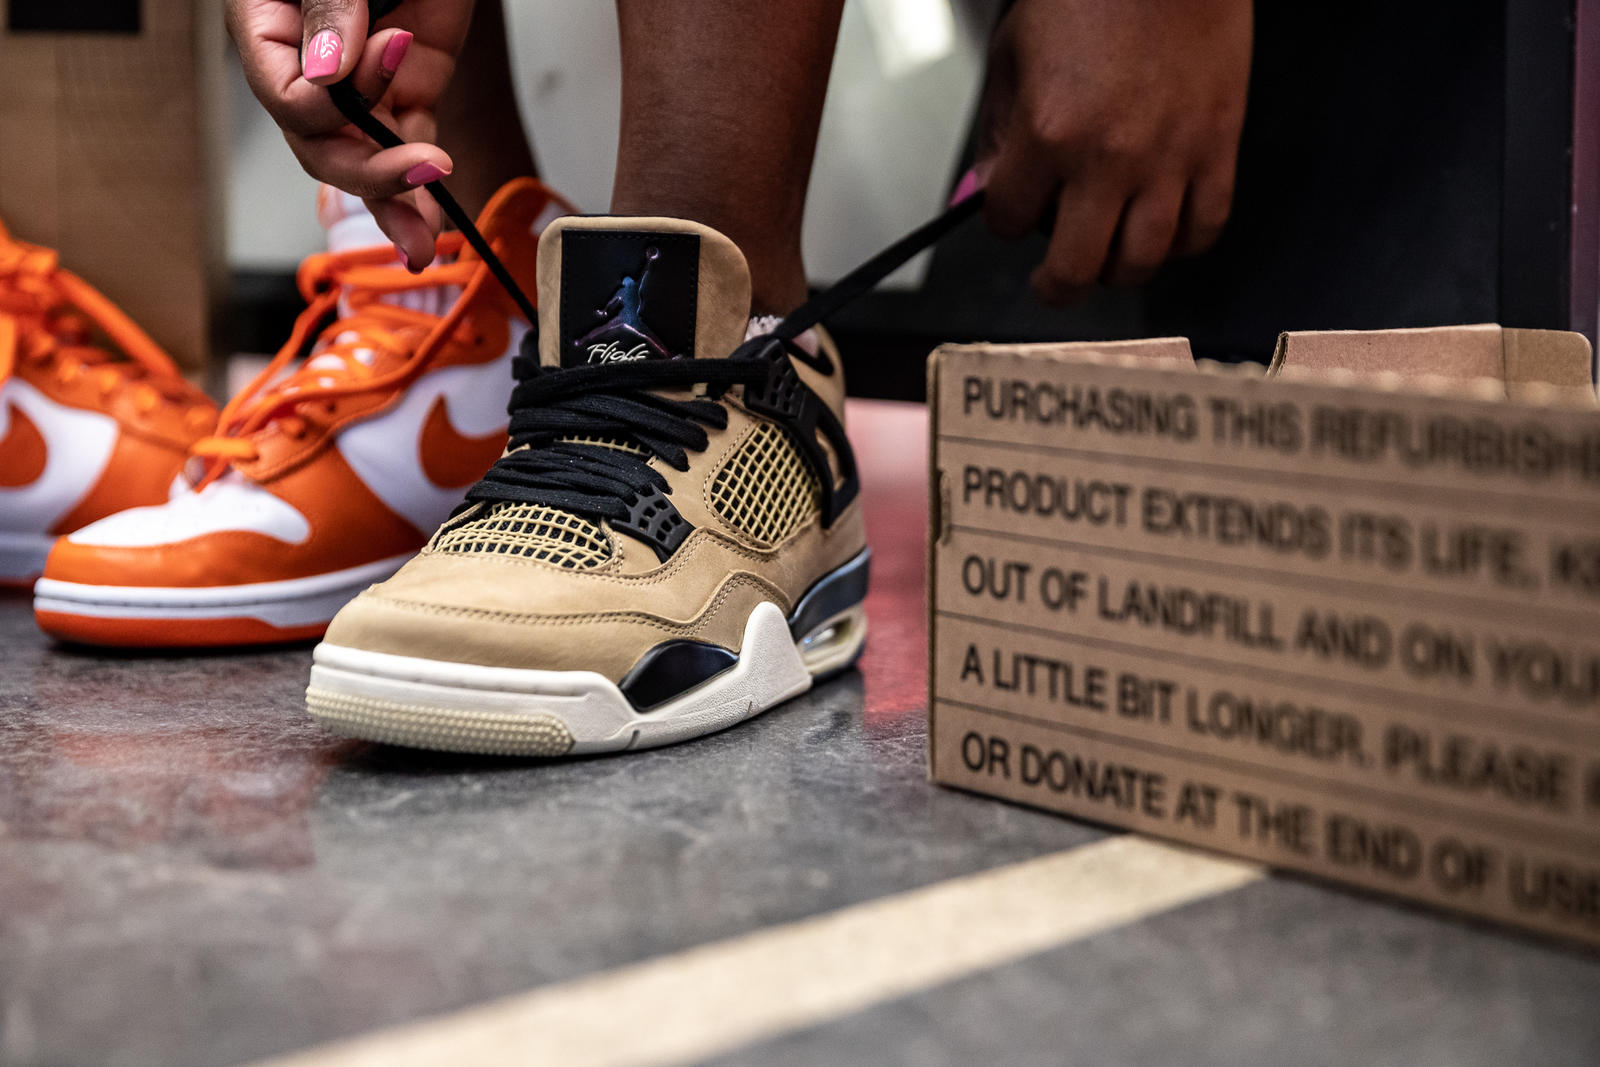 Nike enters the resale business